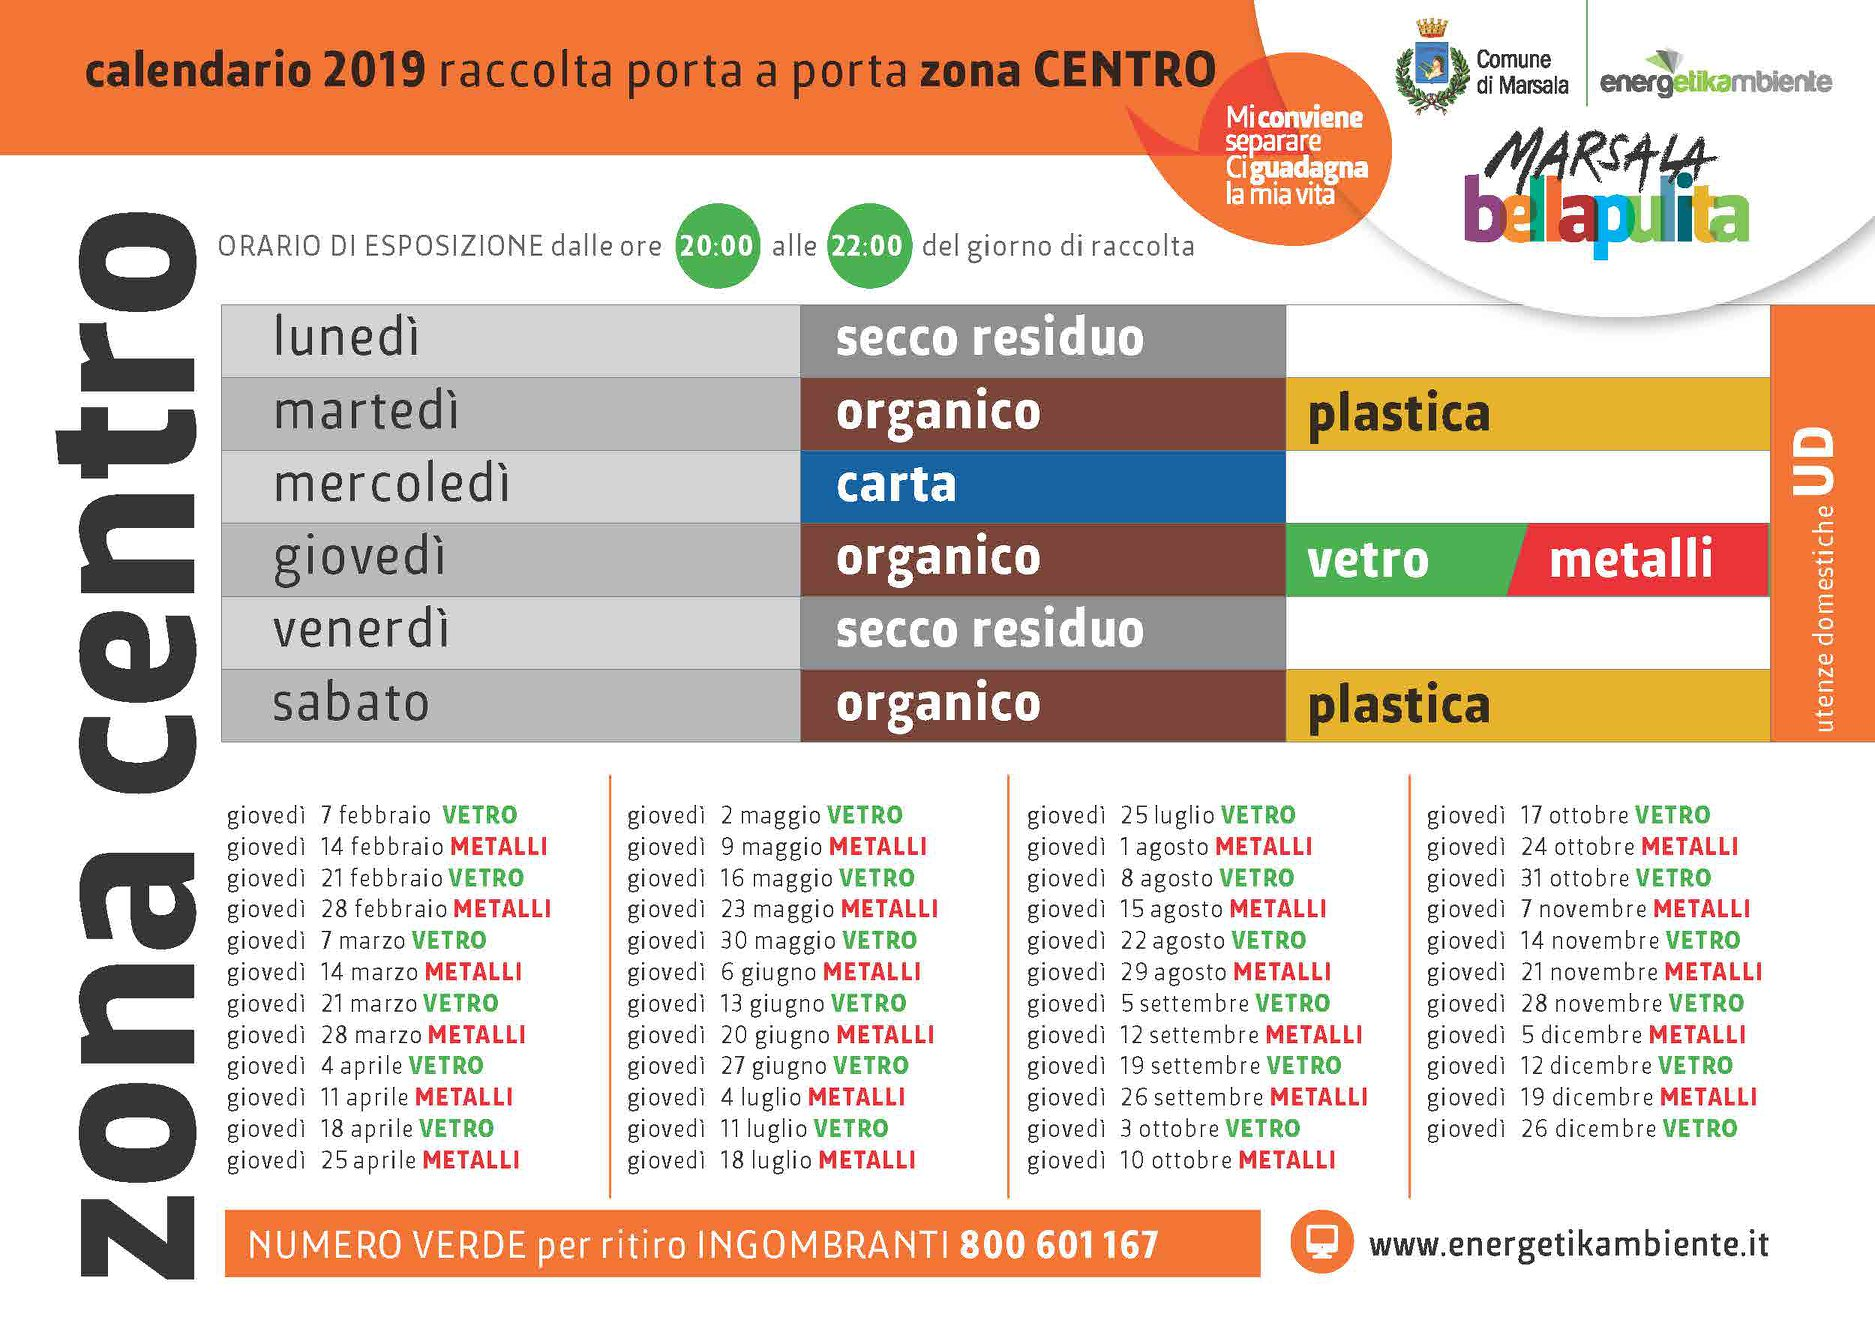 Calendario Differenziata.Marsala Raccolta Differenziata Nuovi Calendari In